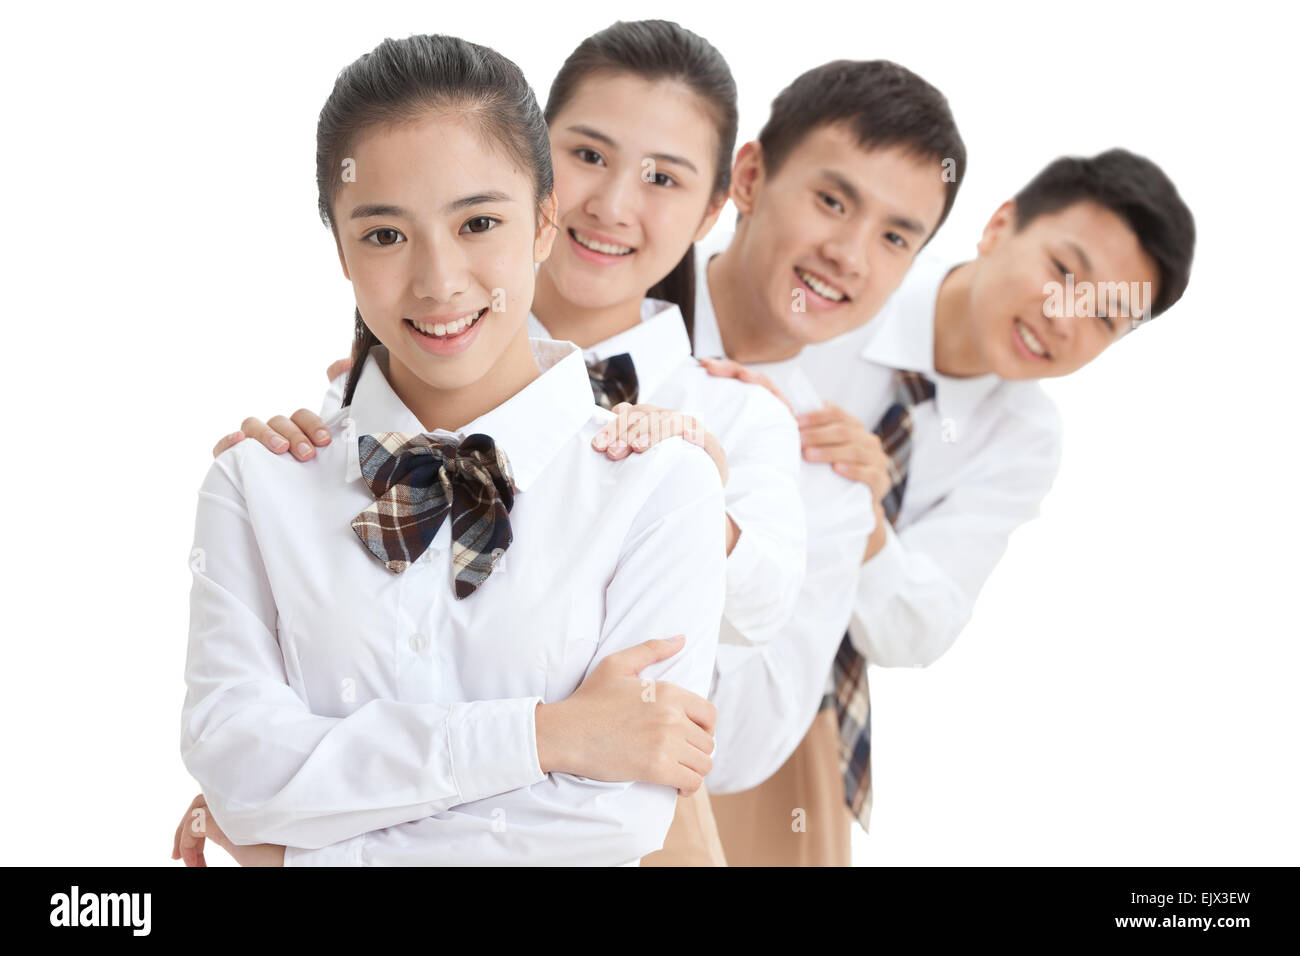 A row of high school students watched the lens - Stock Image